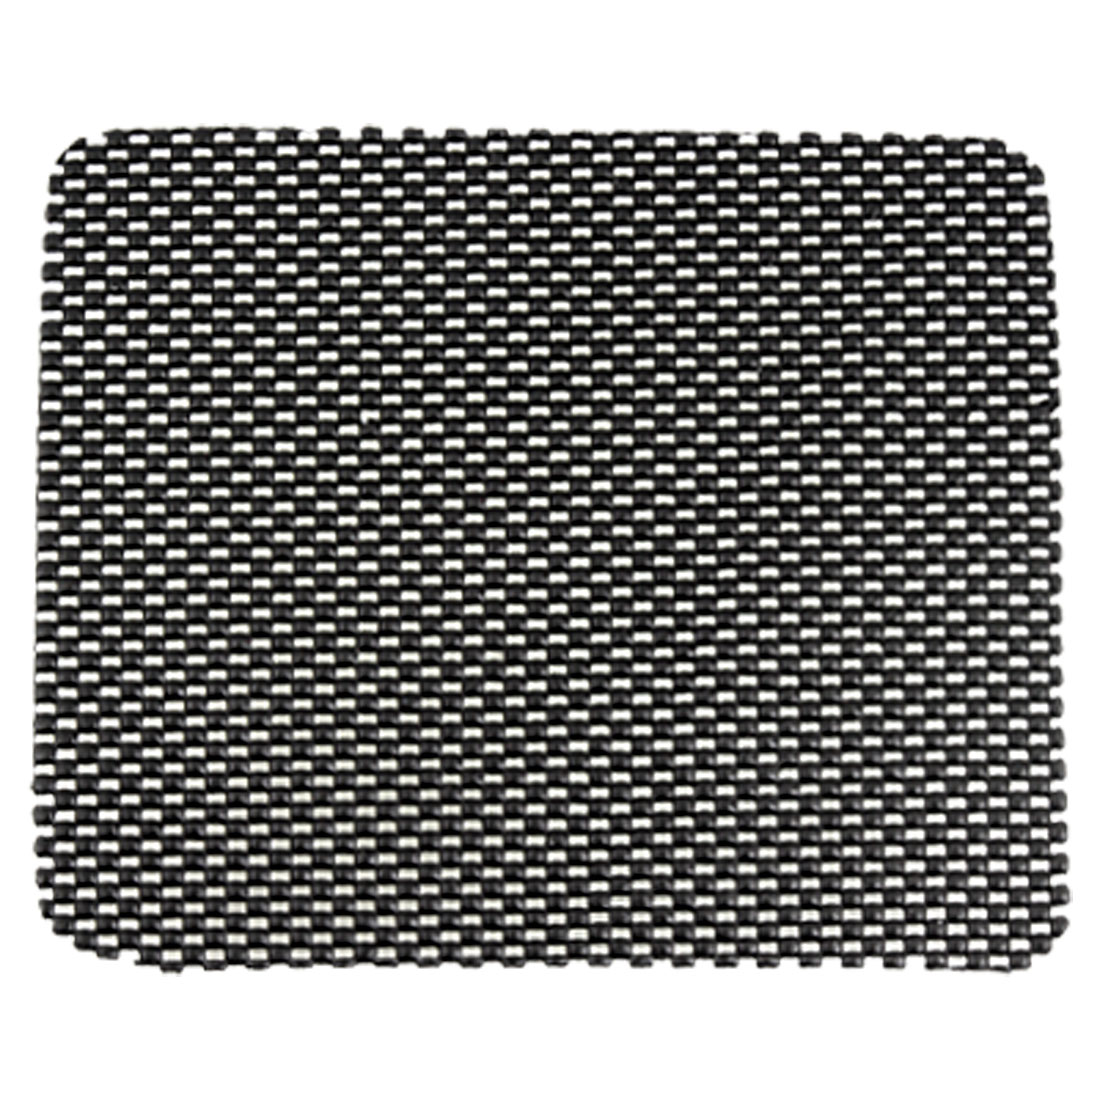 Auto Car Dashboard Mesh Style Rectangular Black PVC Foam Nonslip Mat